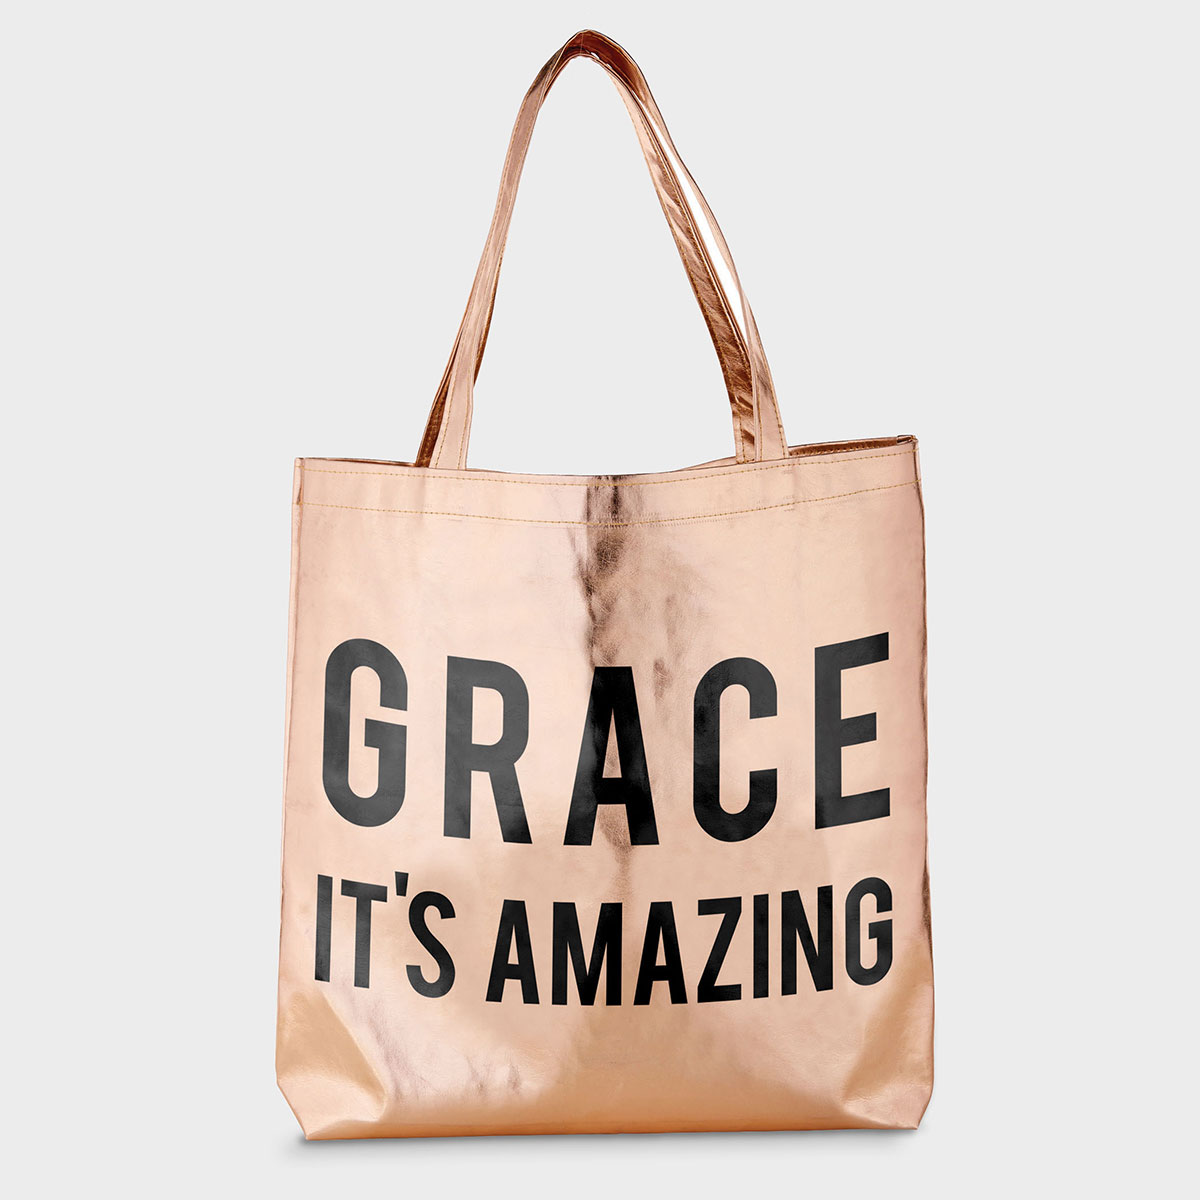 Grace It's Amazing - Rose Gold Tote Bag